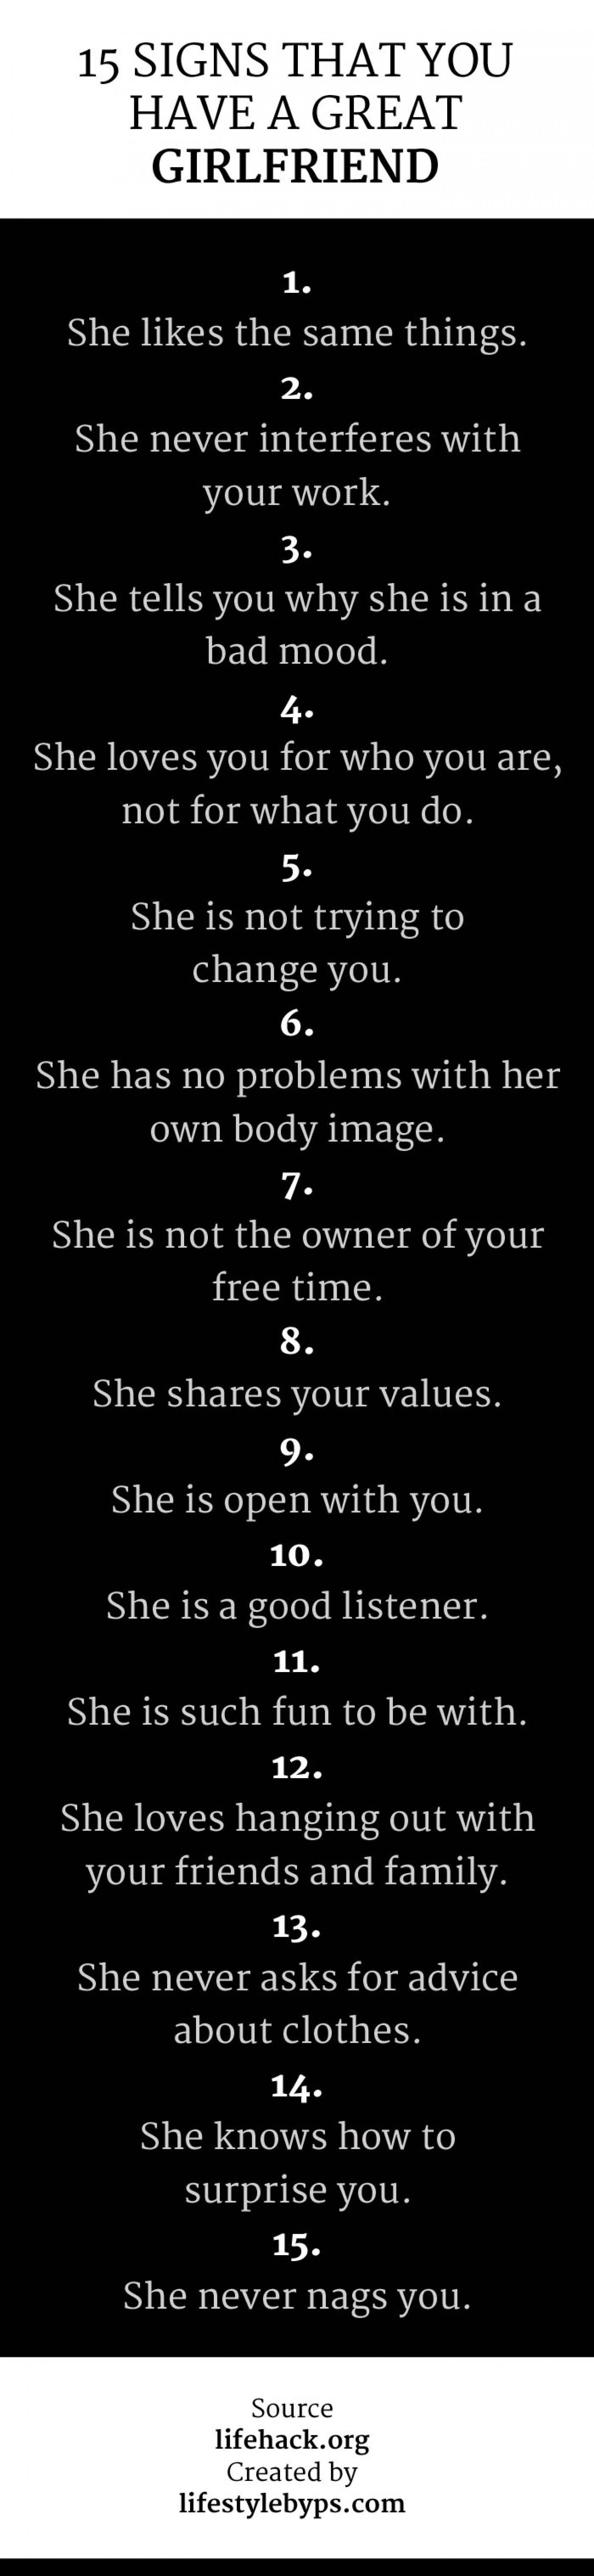 15 Signs That You Have A Great Girlfriend  Infographic